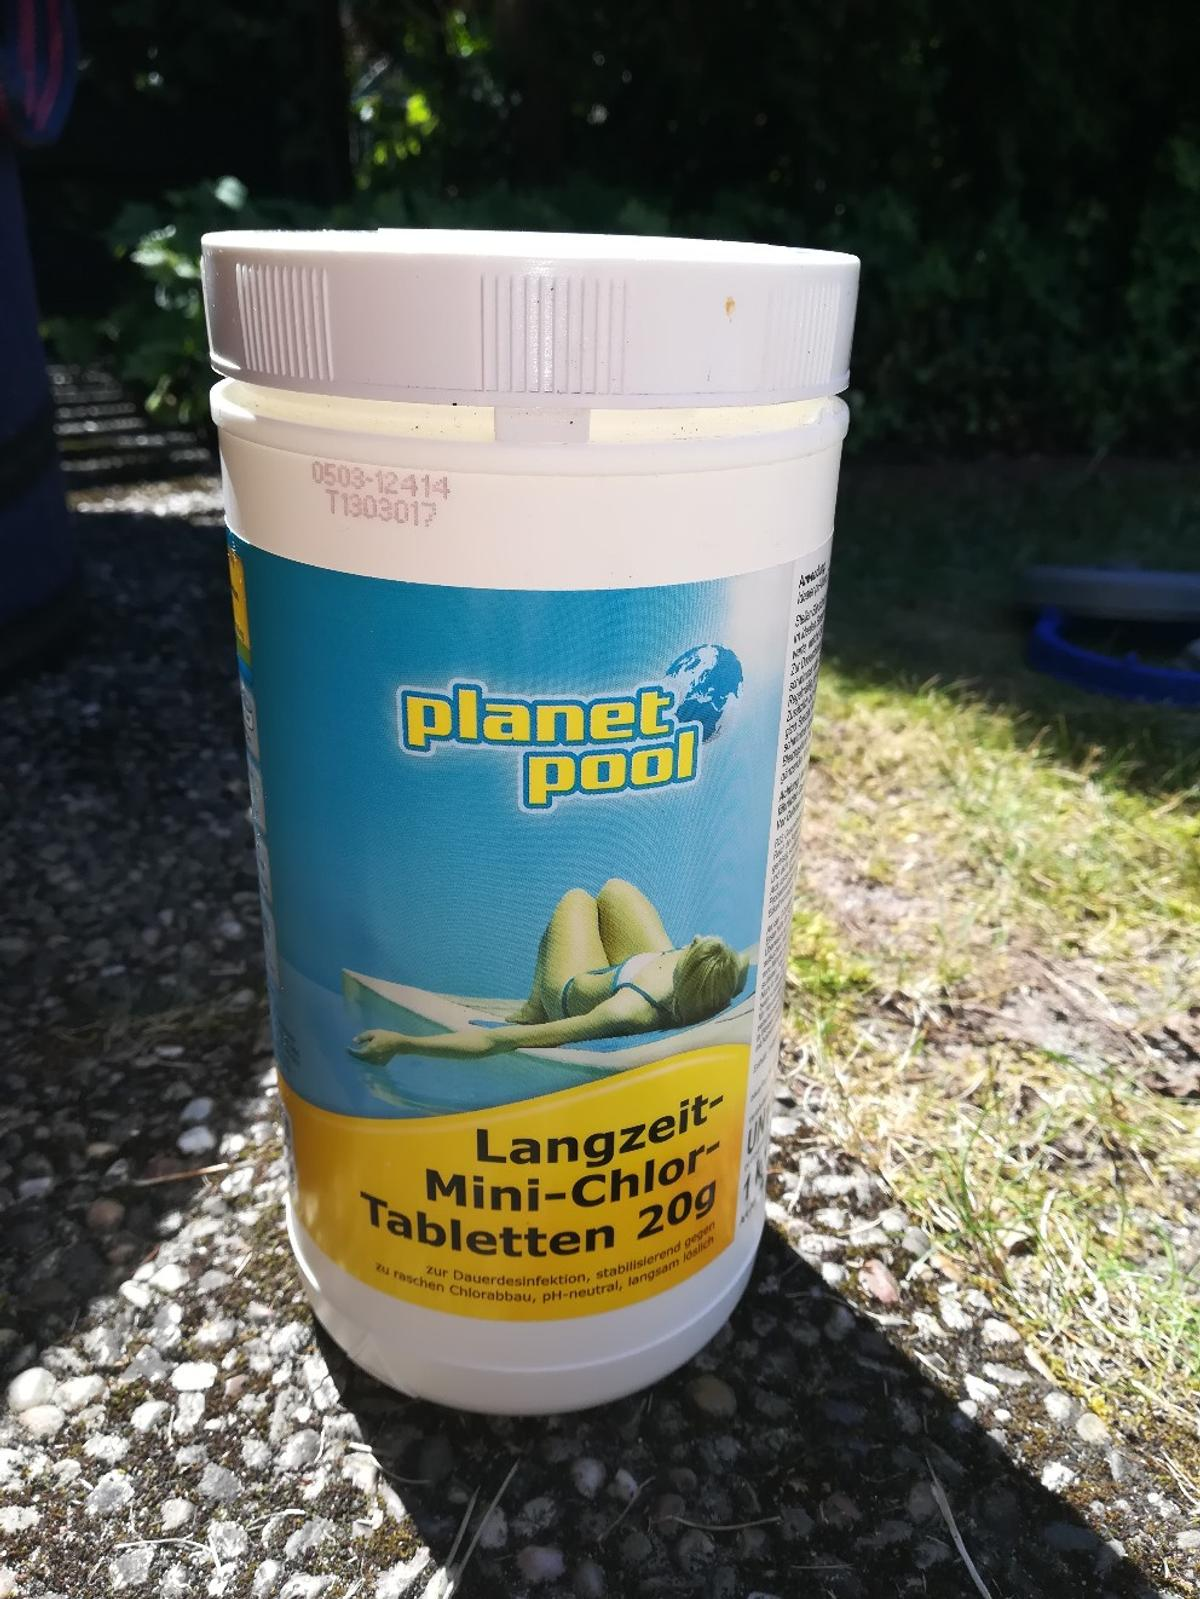 Chlortabletten Mini Pool Planet Pool Langzeit Mini Chlor Tabletten 20